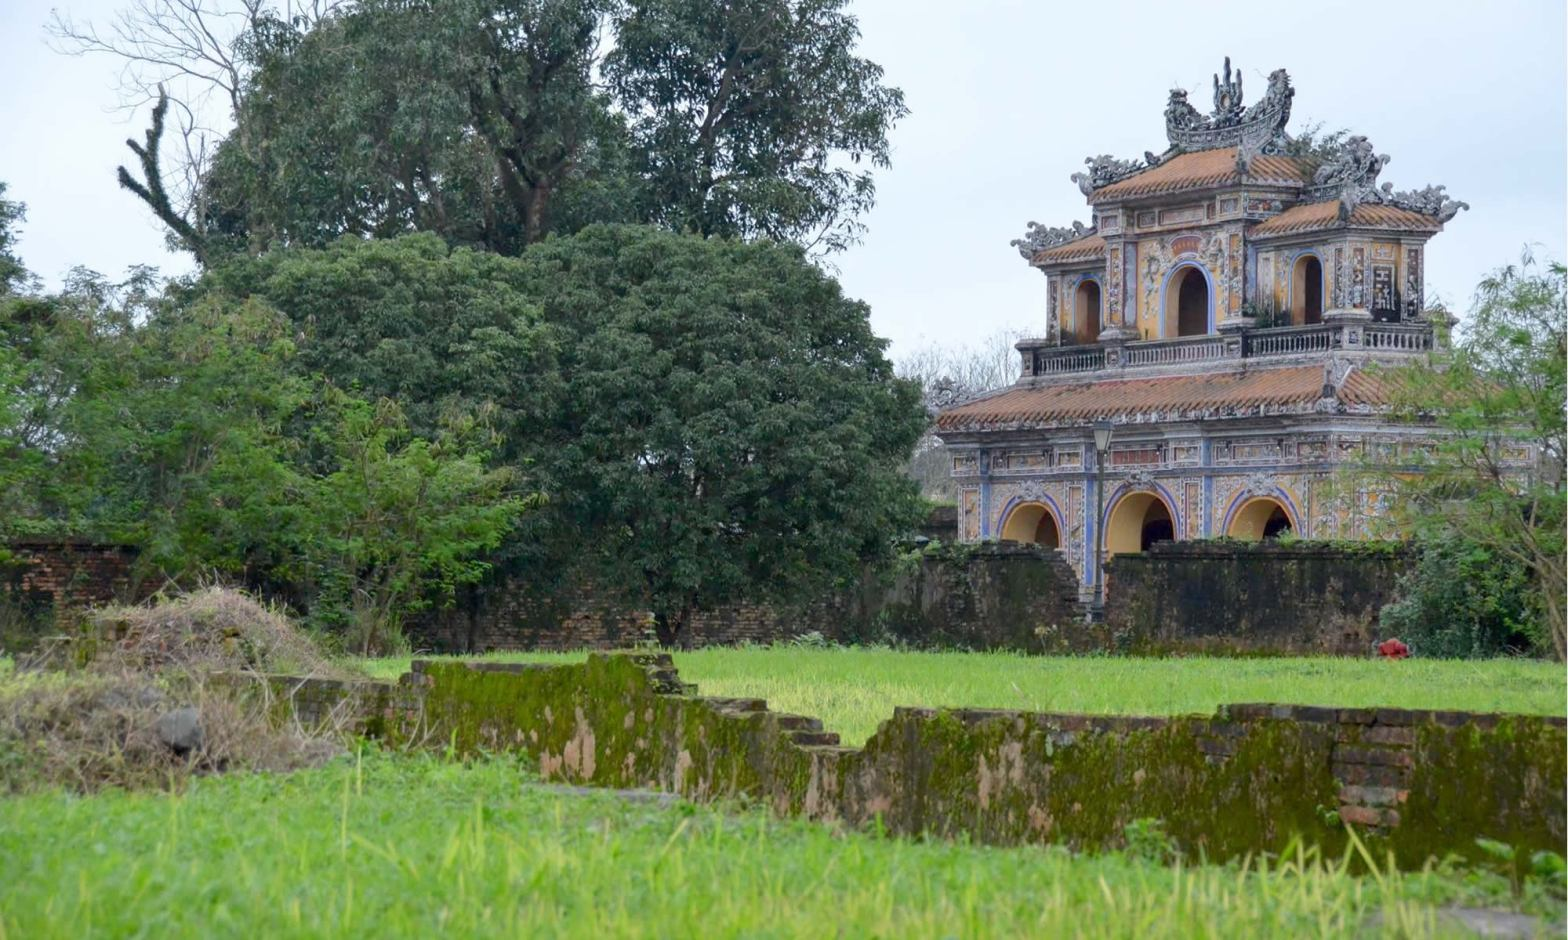 An Imperial City structure in Hue, Vietnam shows signs of war.